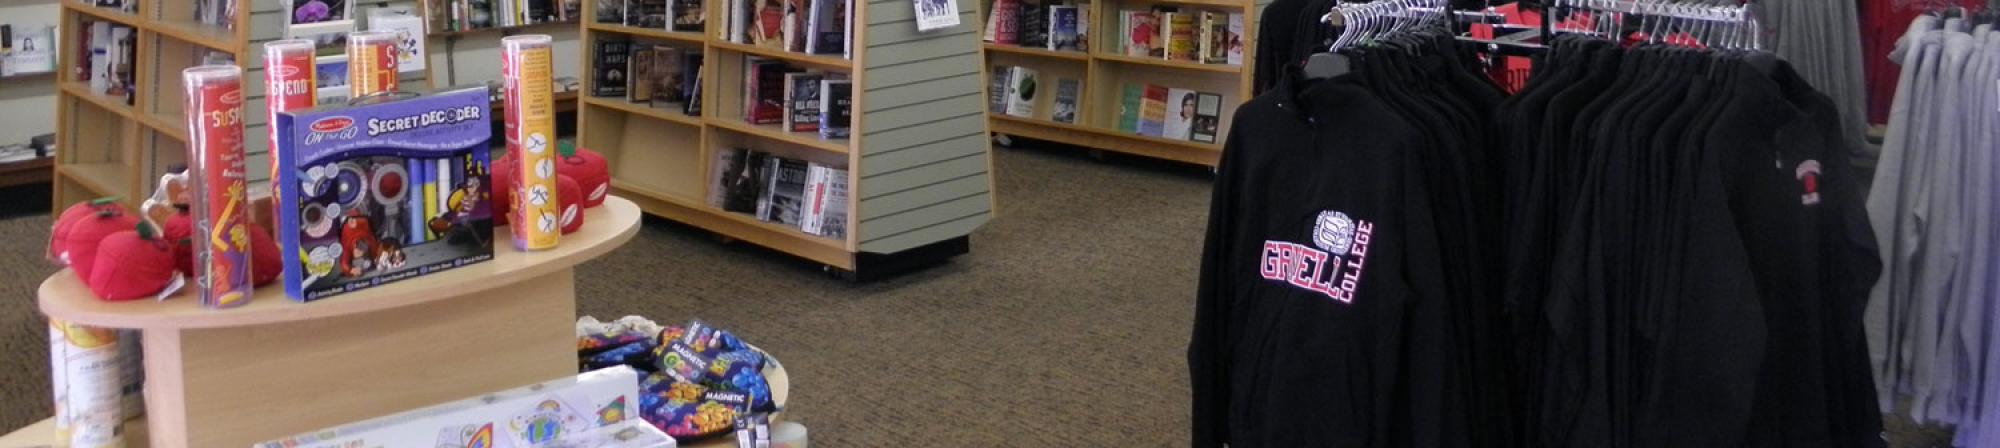 Interior of new Pioneer Bookshop, showing wide variety of books, games, and Grinnell College gear.